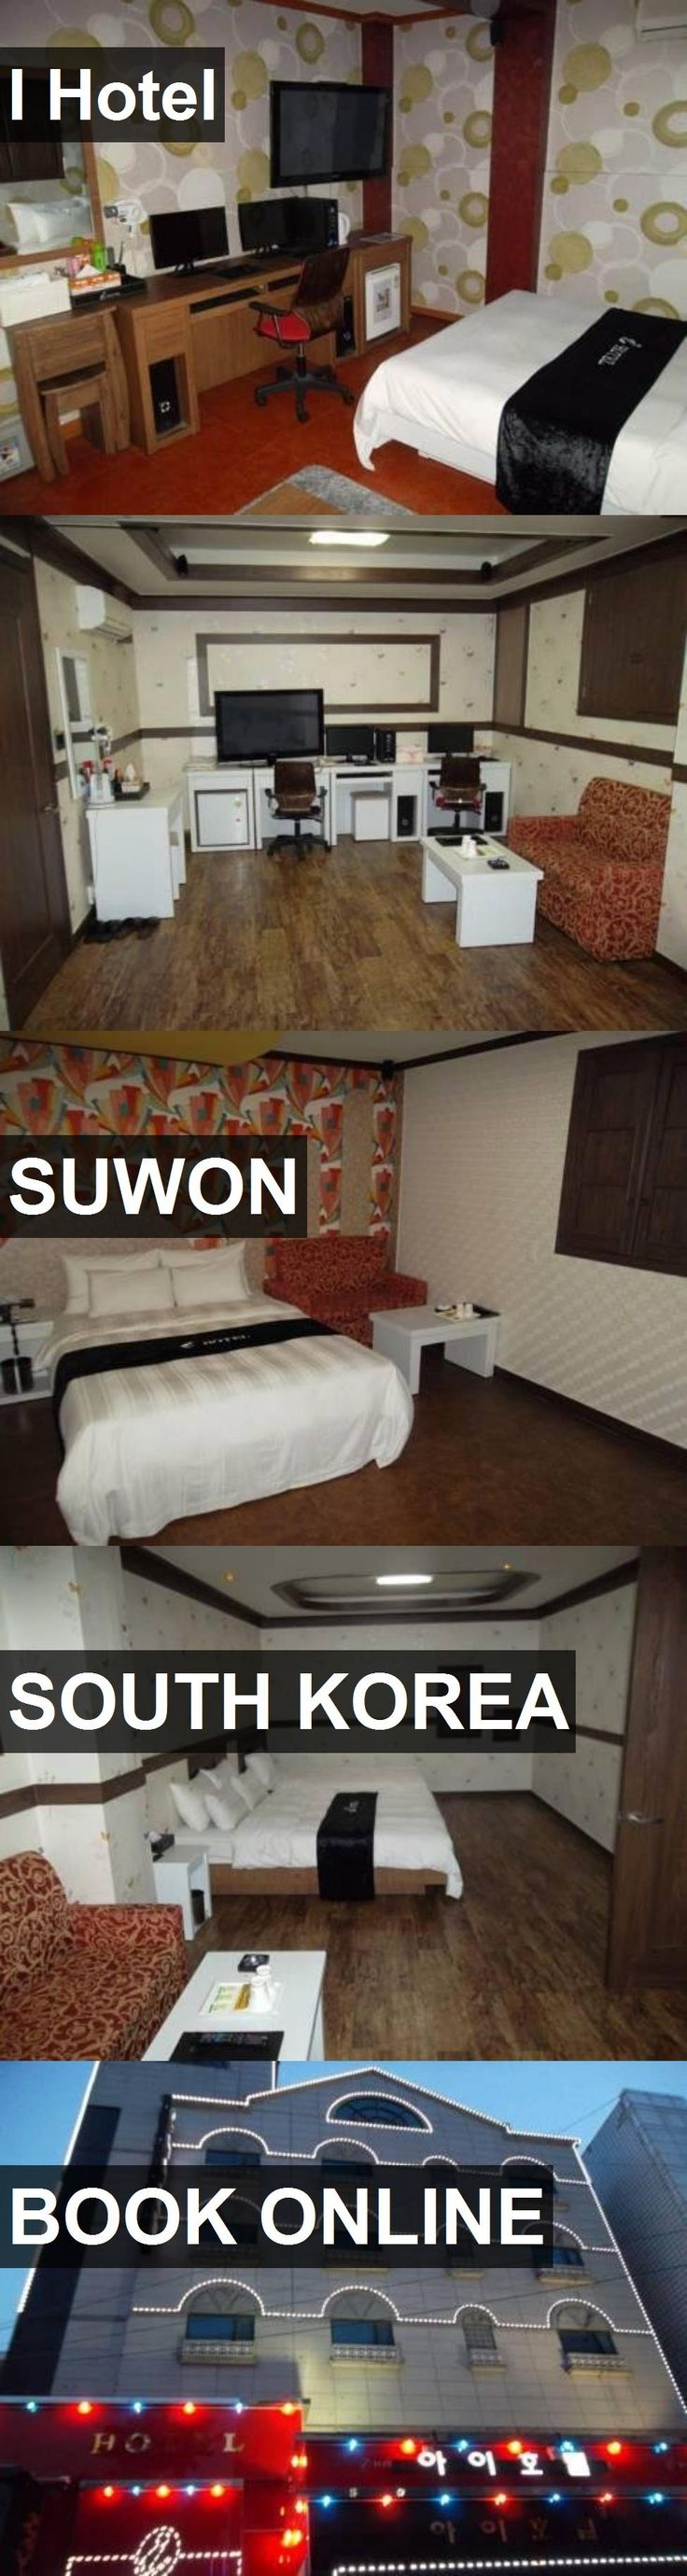 I Hotel in Suwon, South Korea. For more information, photos, reviews and best prices please follow the link. #SouthKorea #Suwon #travel #vacation #hotel